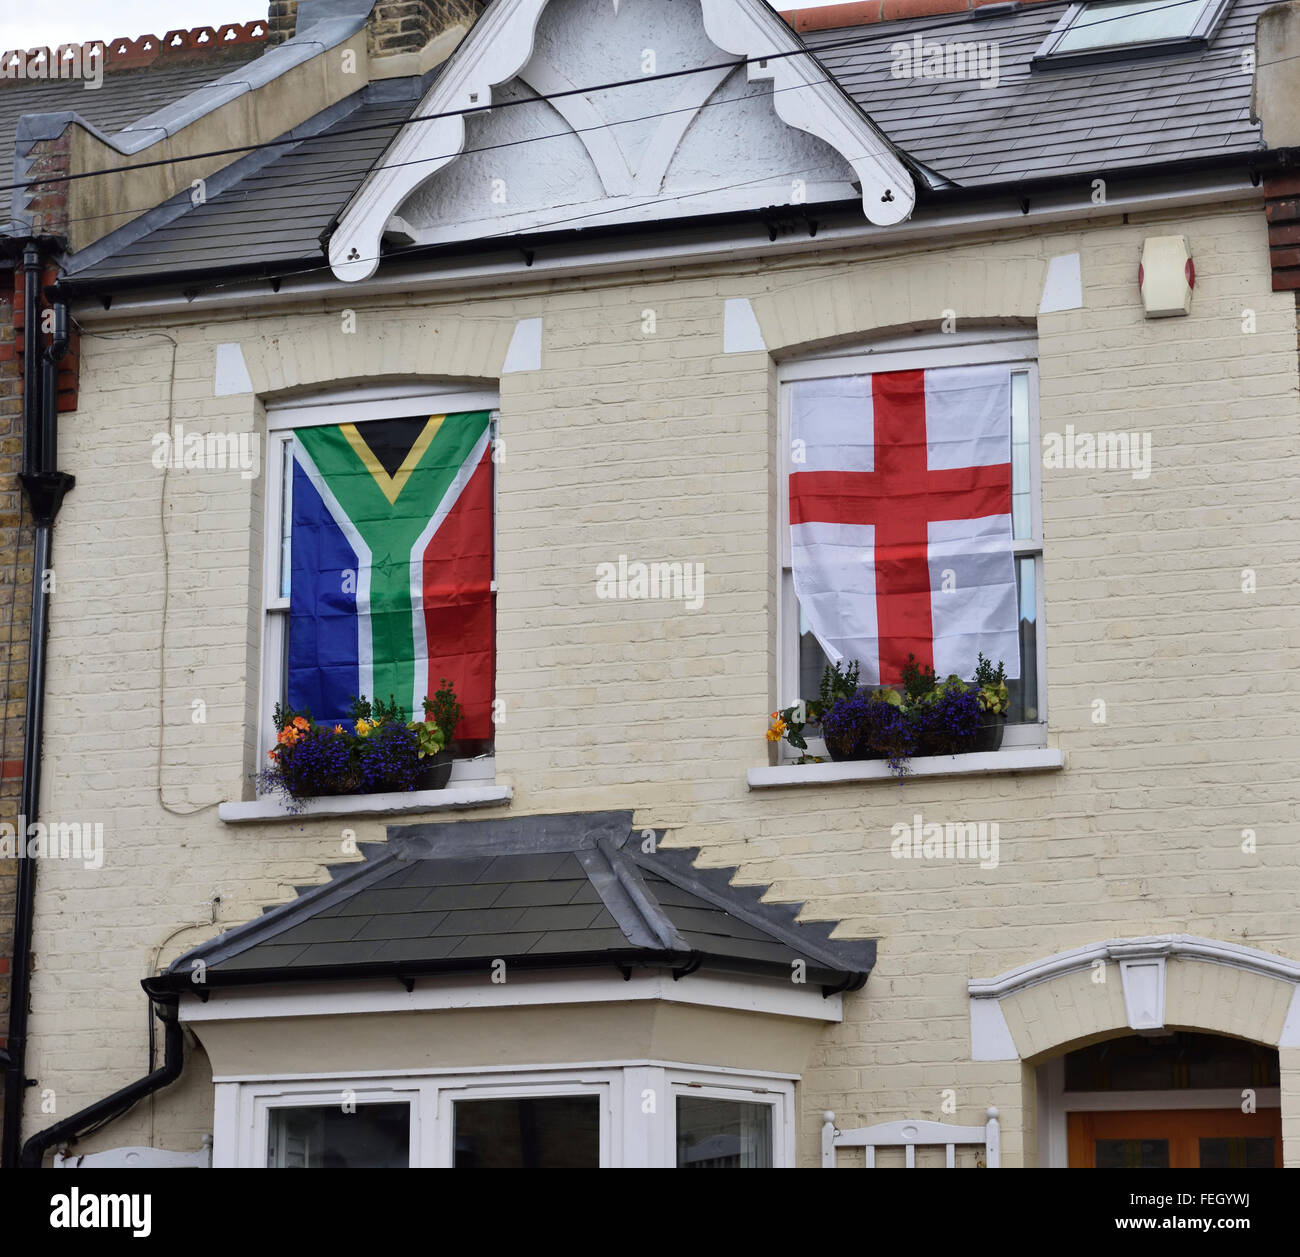 Flying the English flag on houses, garages, windows in Twickenham during the 2015 Rugby World Cup - Stock Image